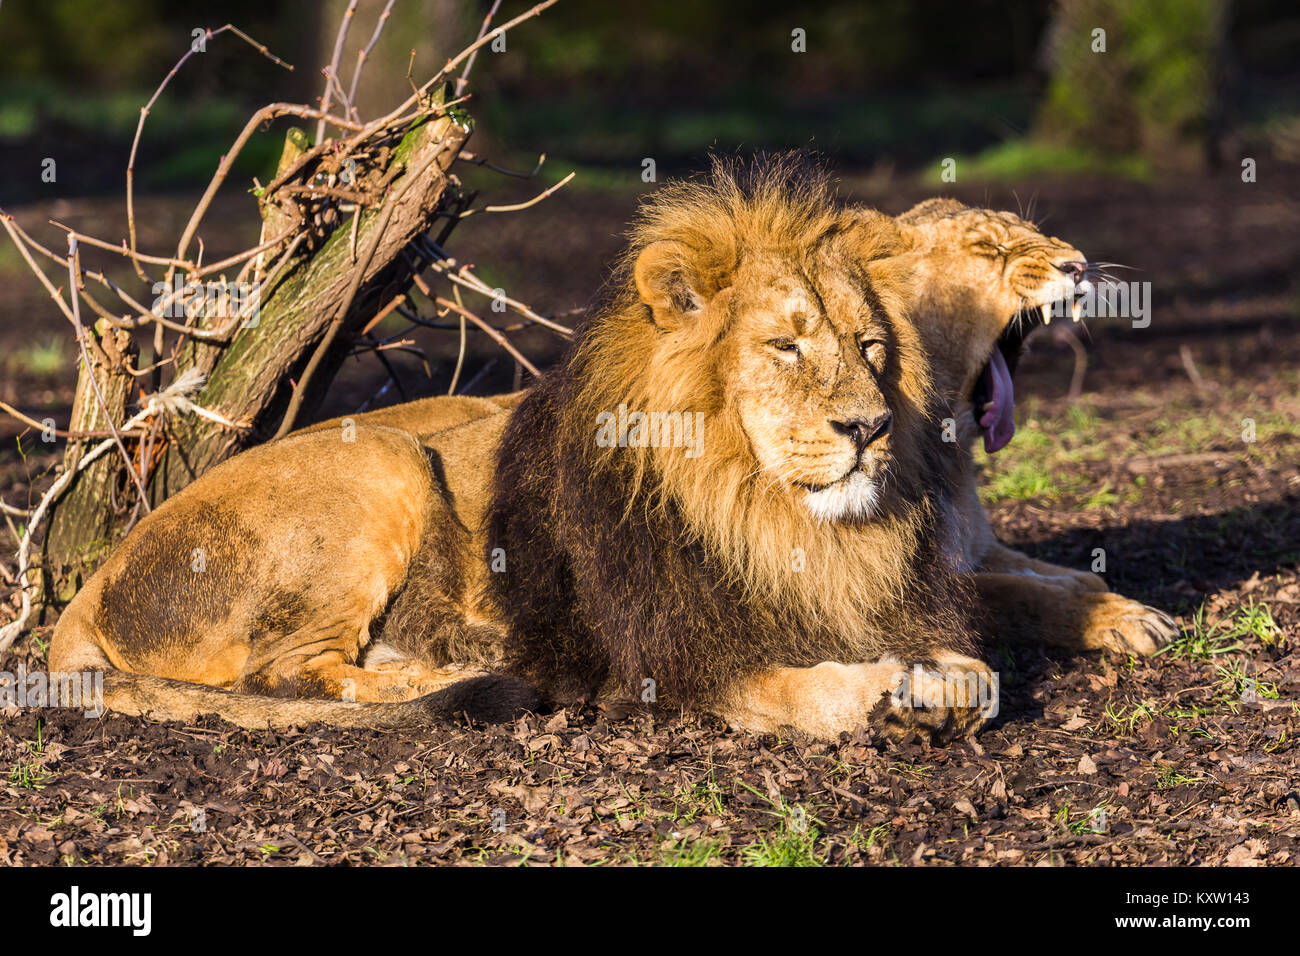 Asiatic lion pair laze in the early morning sunshine. - Stock Image